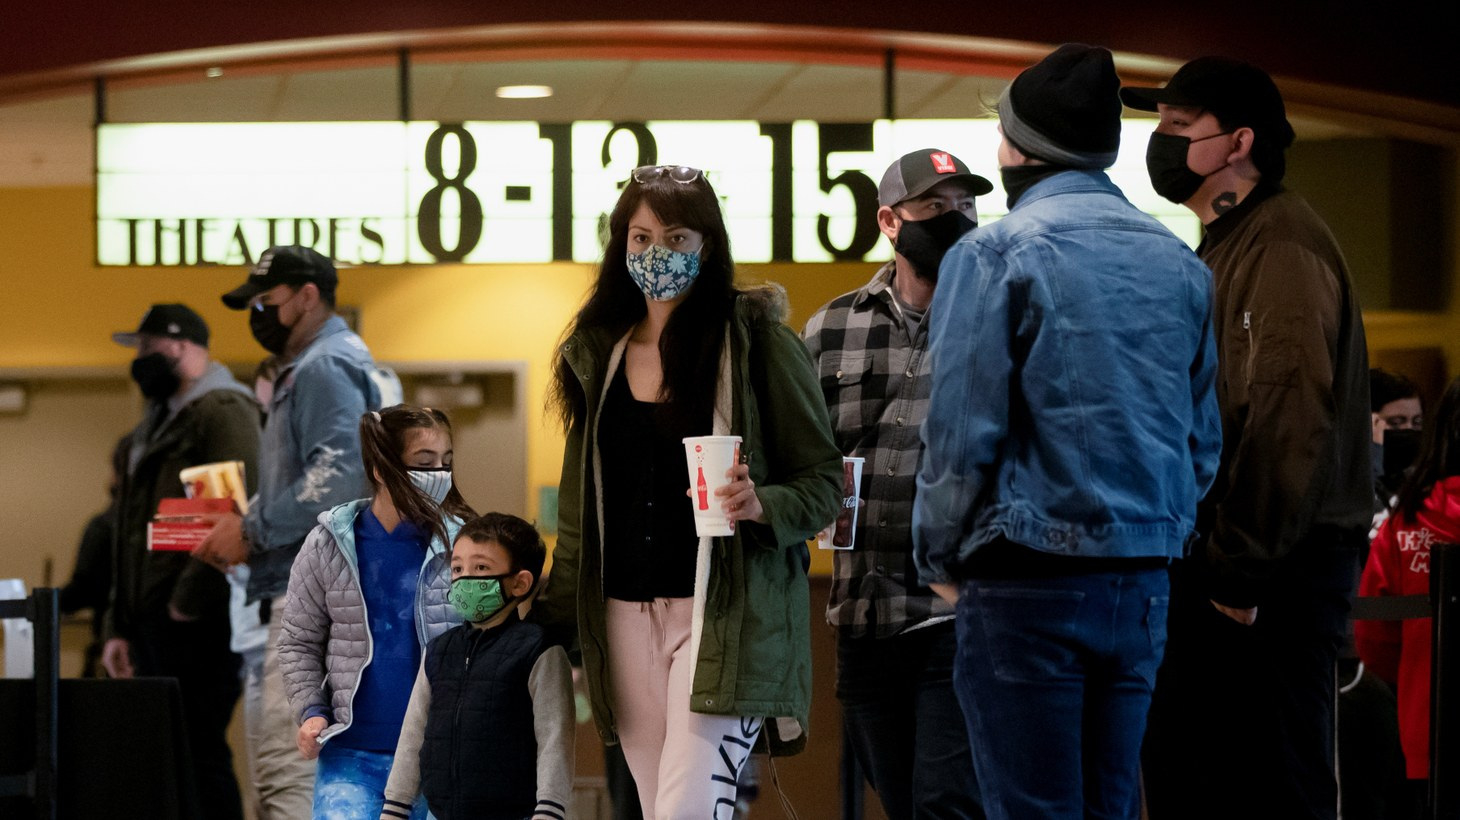 Moviegoers are pictured at an AMC theatre on reopening day during the outbreak of the coronavirus disease (COVID-19), in Burbank, California, U.S., March 15, 2021.